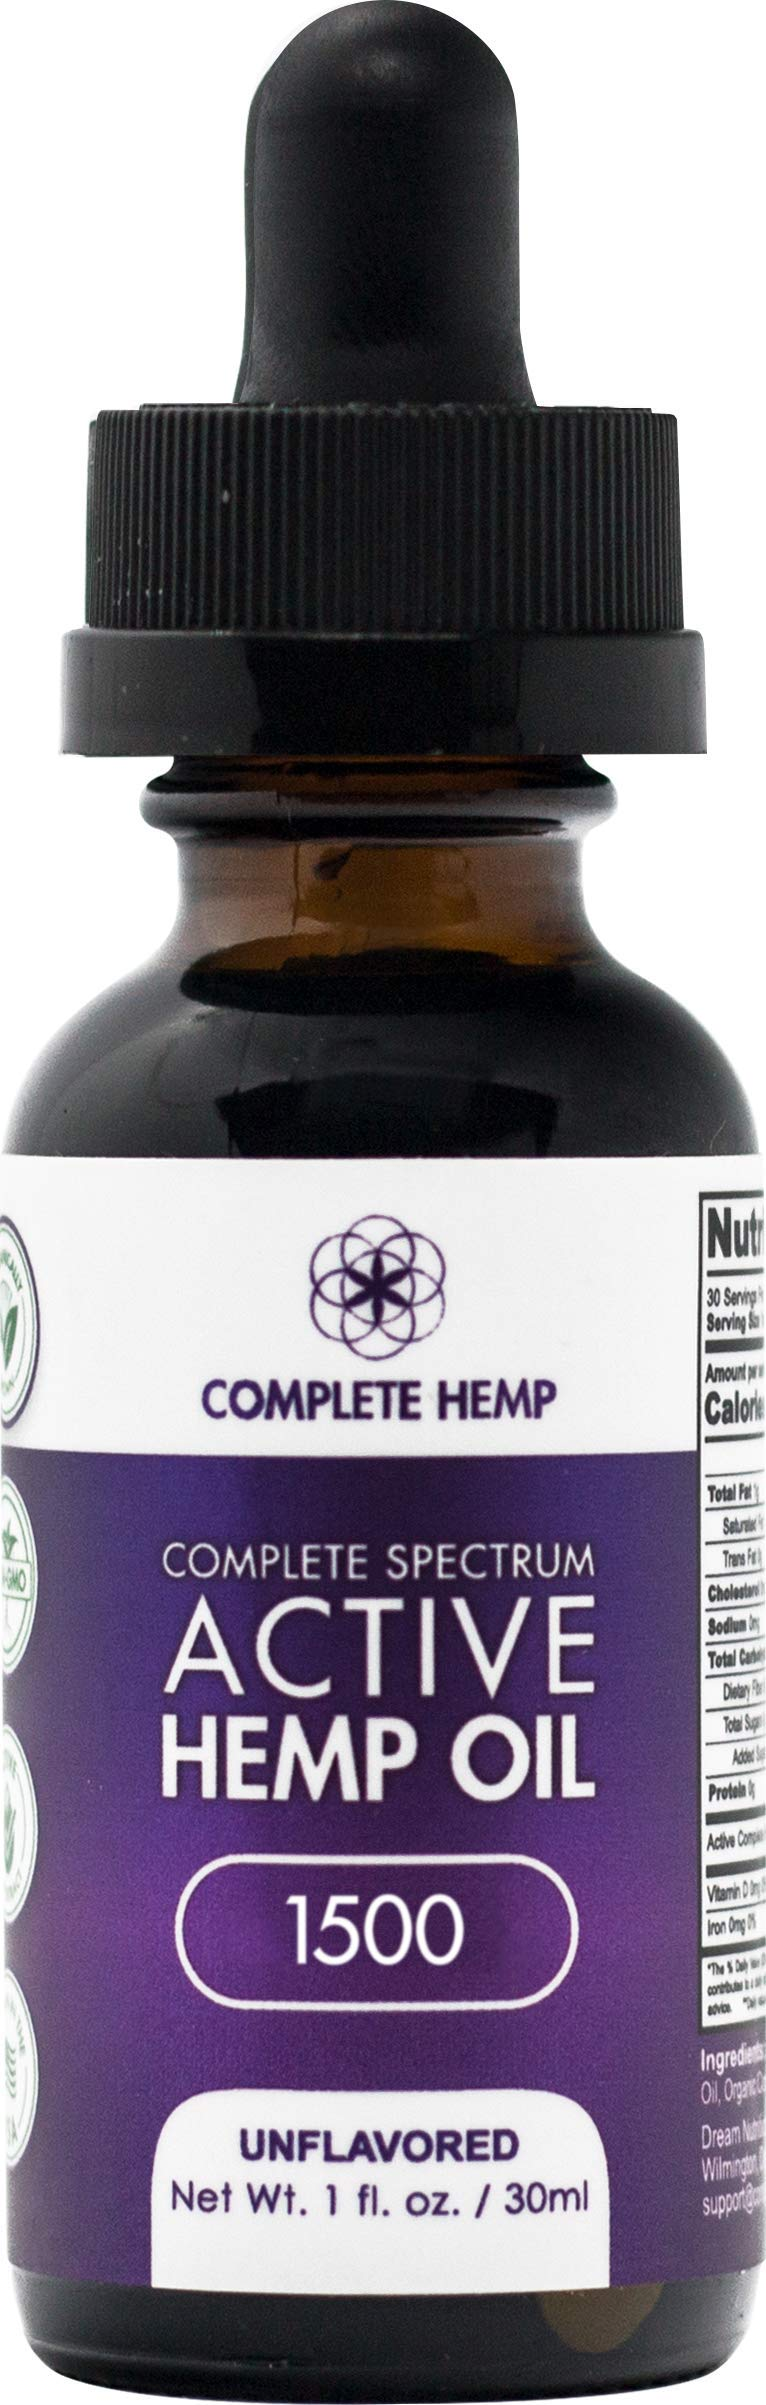 Complete Hemp Complete Spectrum Active Hemp Oil 1,500 | Organic and Clean | Can Support Stress, Anxiety, Inflammation, Pain and More | Super-Critical CO2 Hemp Extract | 3rd Party ISO Tested | 50mg/mL by Complete Hemp (Image #1)